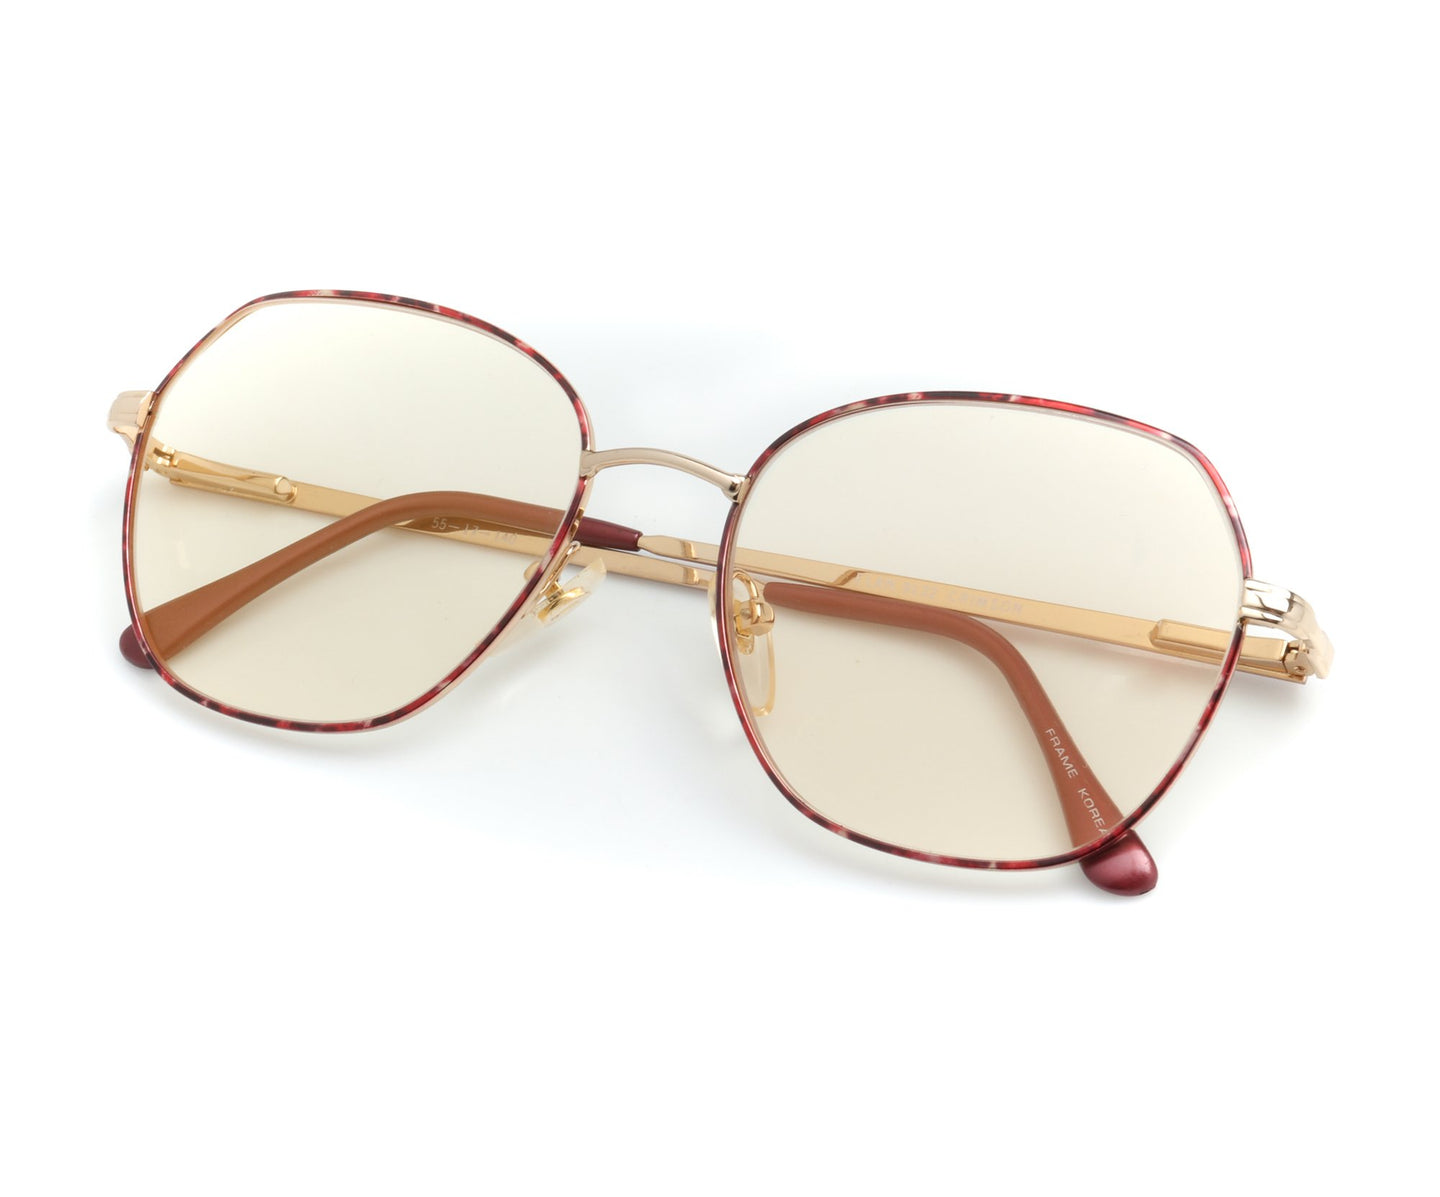 VF Represent (Light Orange), VF by Vintage Frames , glasses frames, eyeglasses online, eyeglass frames, mens glasses, womens glasses, buy glasses online, designer eyeglasses, vintage sunglasses, retro sunglasses, vintage glasses, sunglass, eyeglass, glasses, lens, vintage frames company, vf